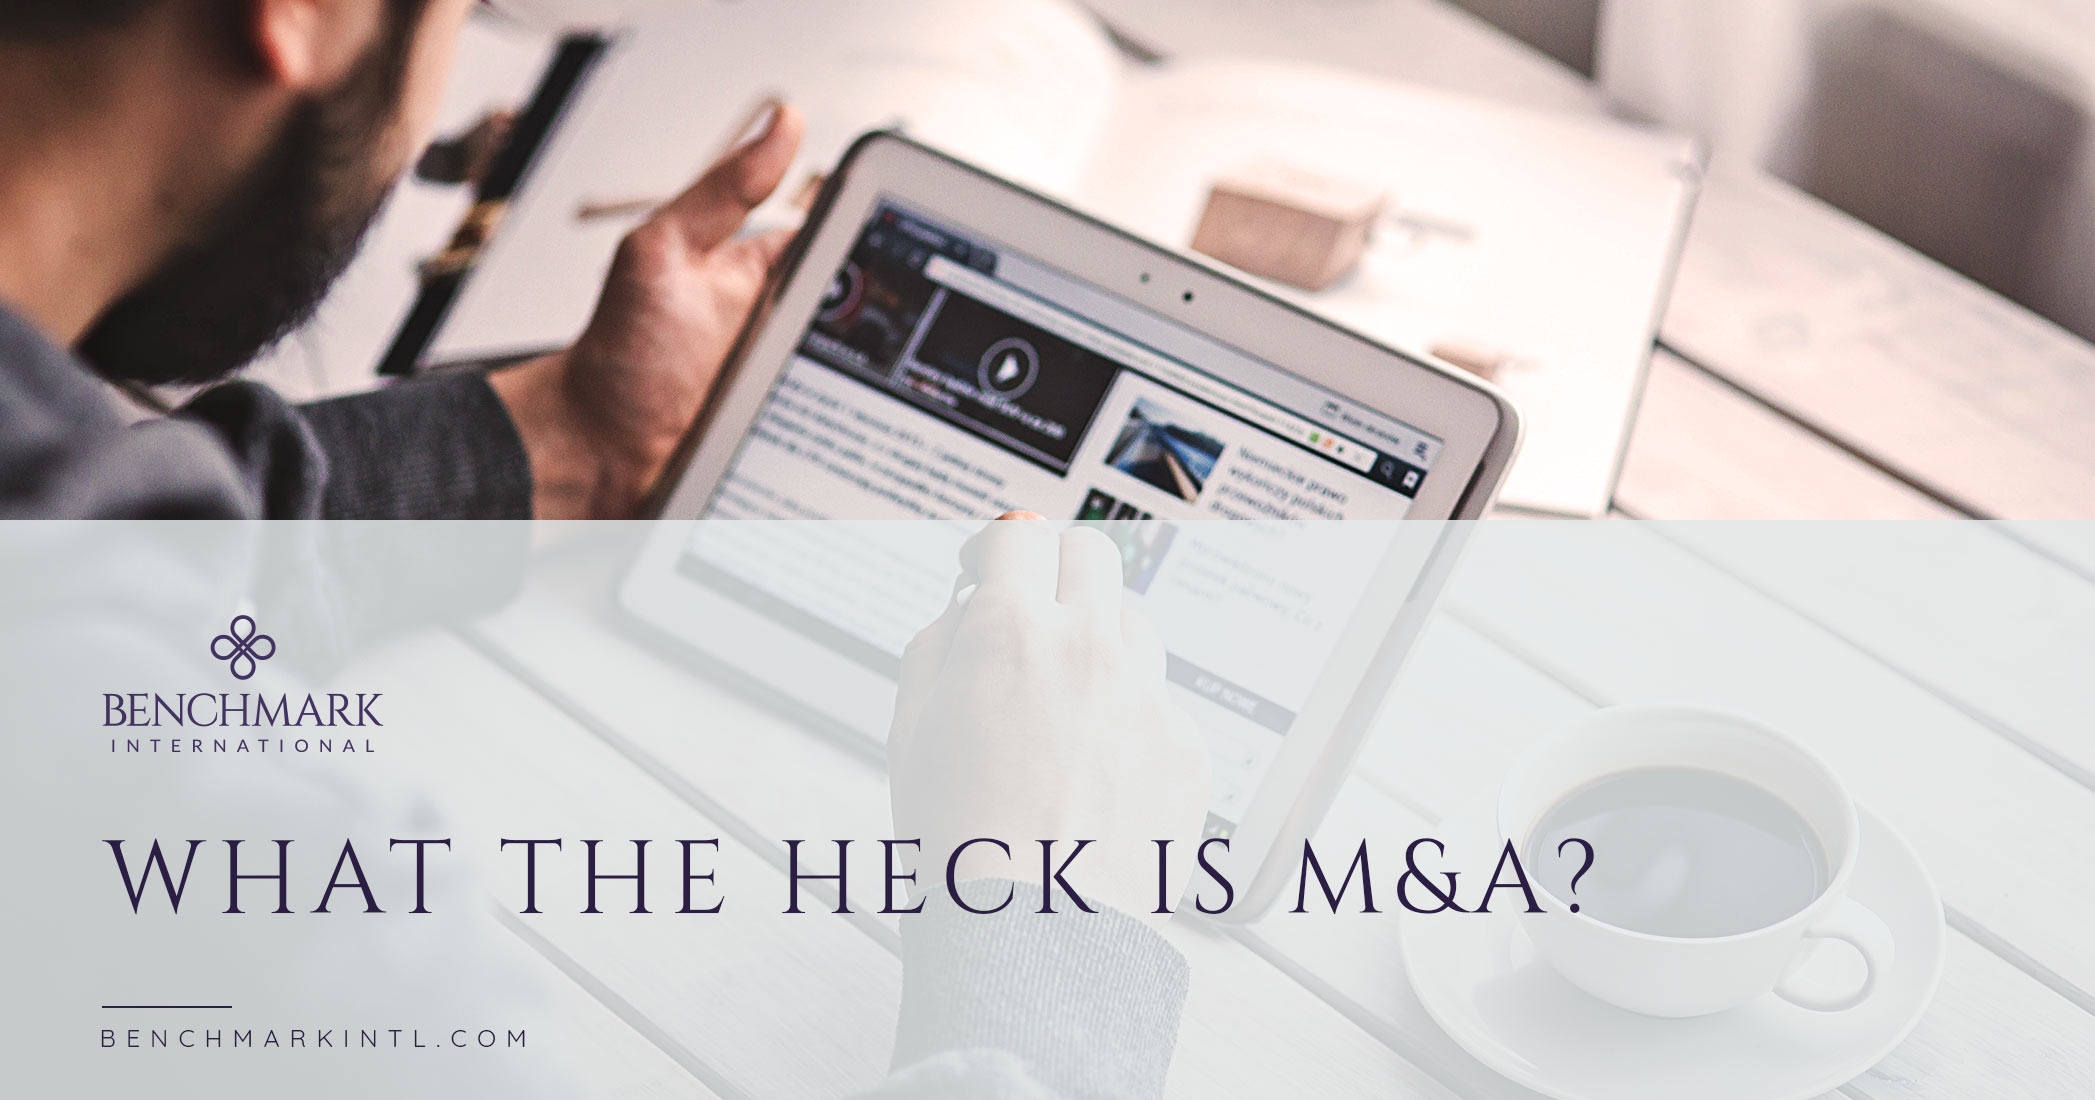 What The Heck is M&A?